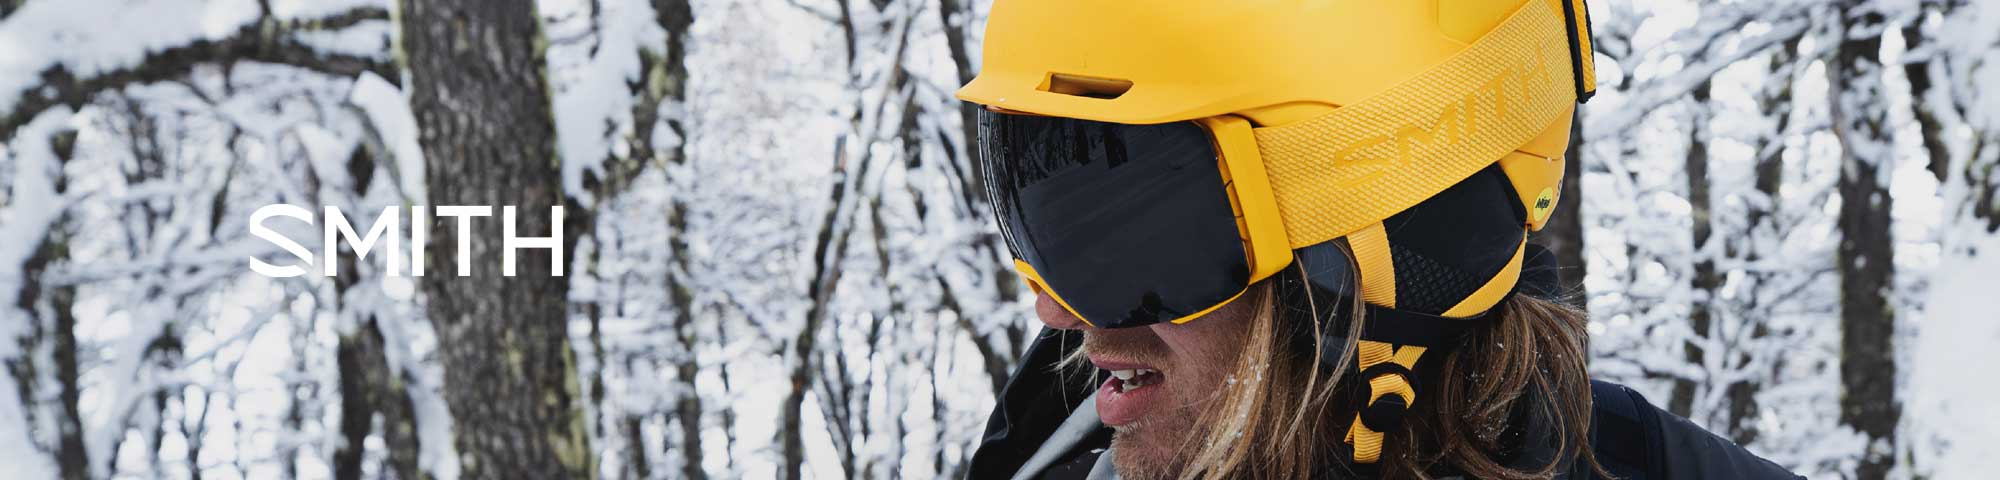 Smith Ski Goggle Replacement Lenses